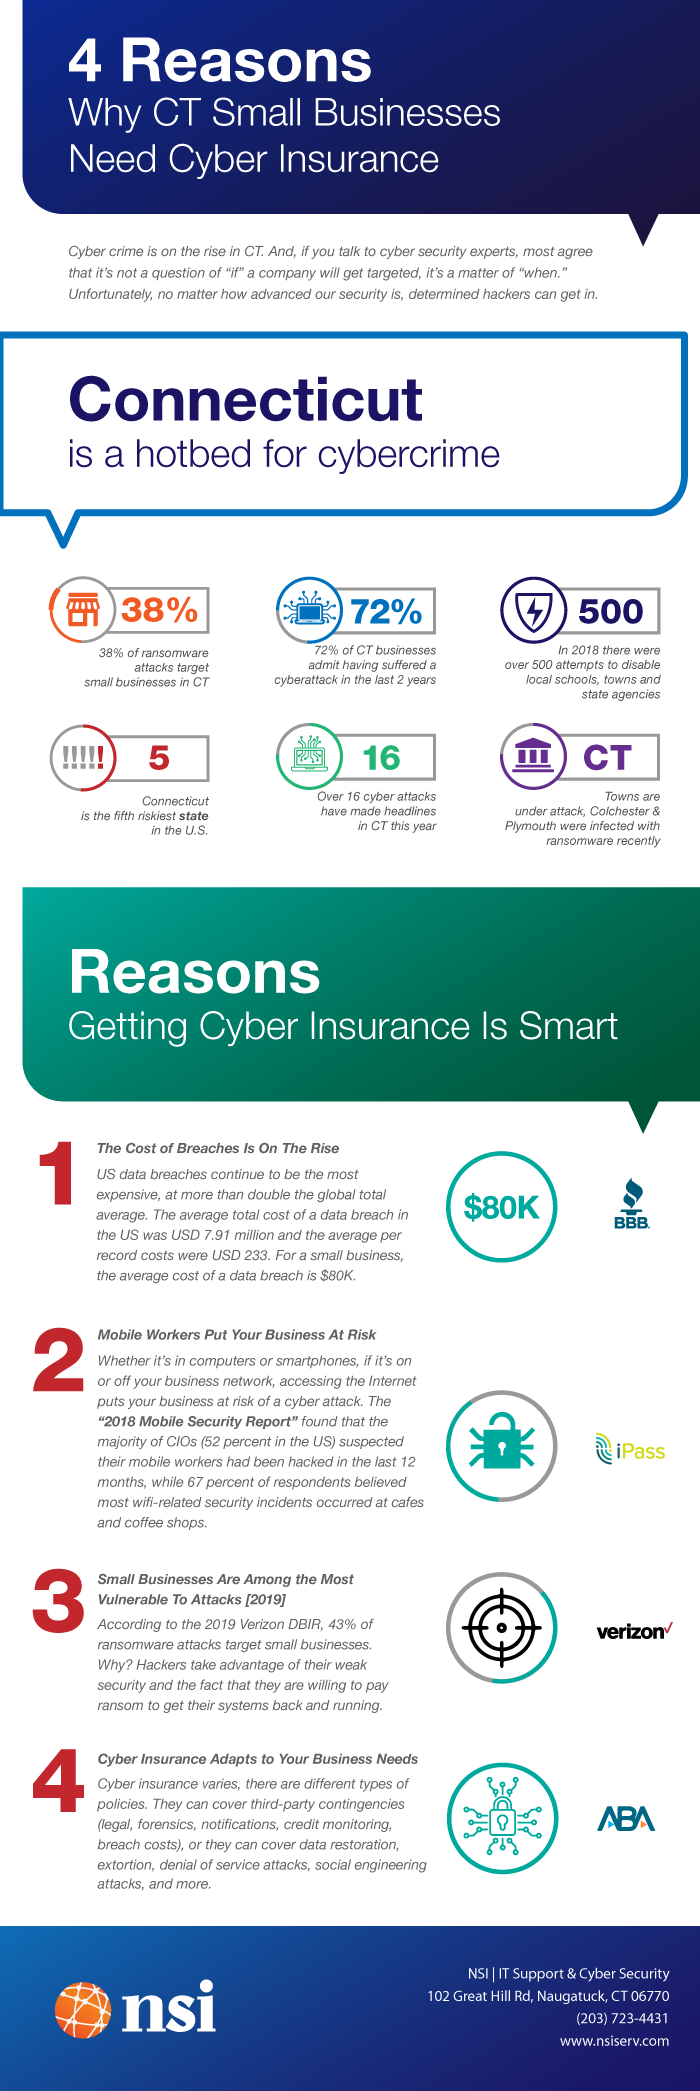 4 Reasons Why CT Small Businesses Need Cyber Insurance [Infographic]